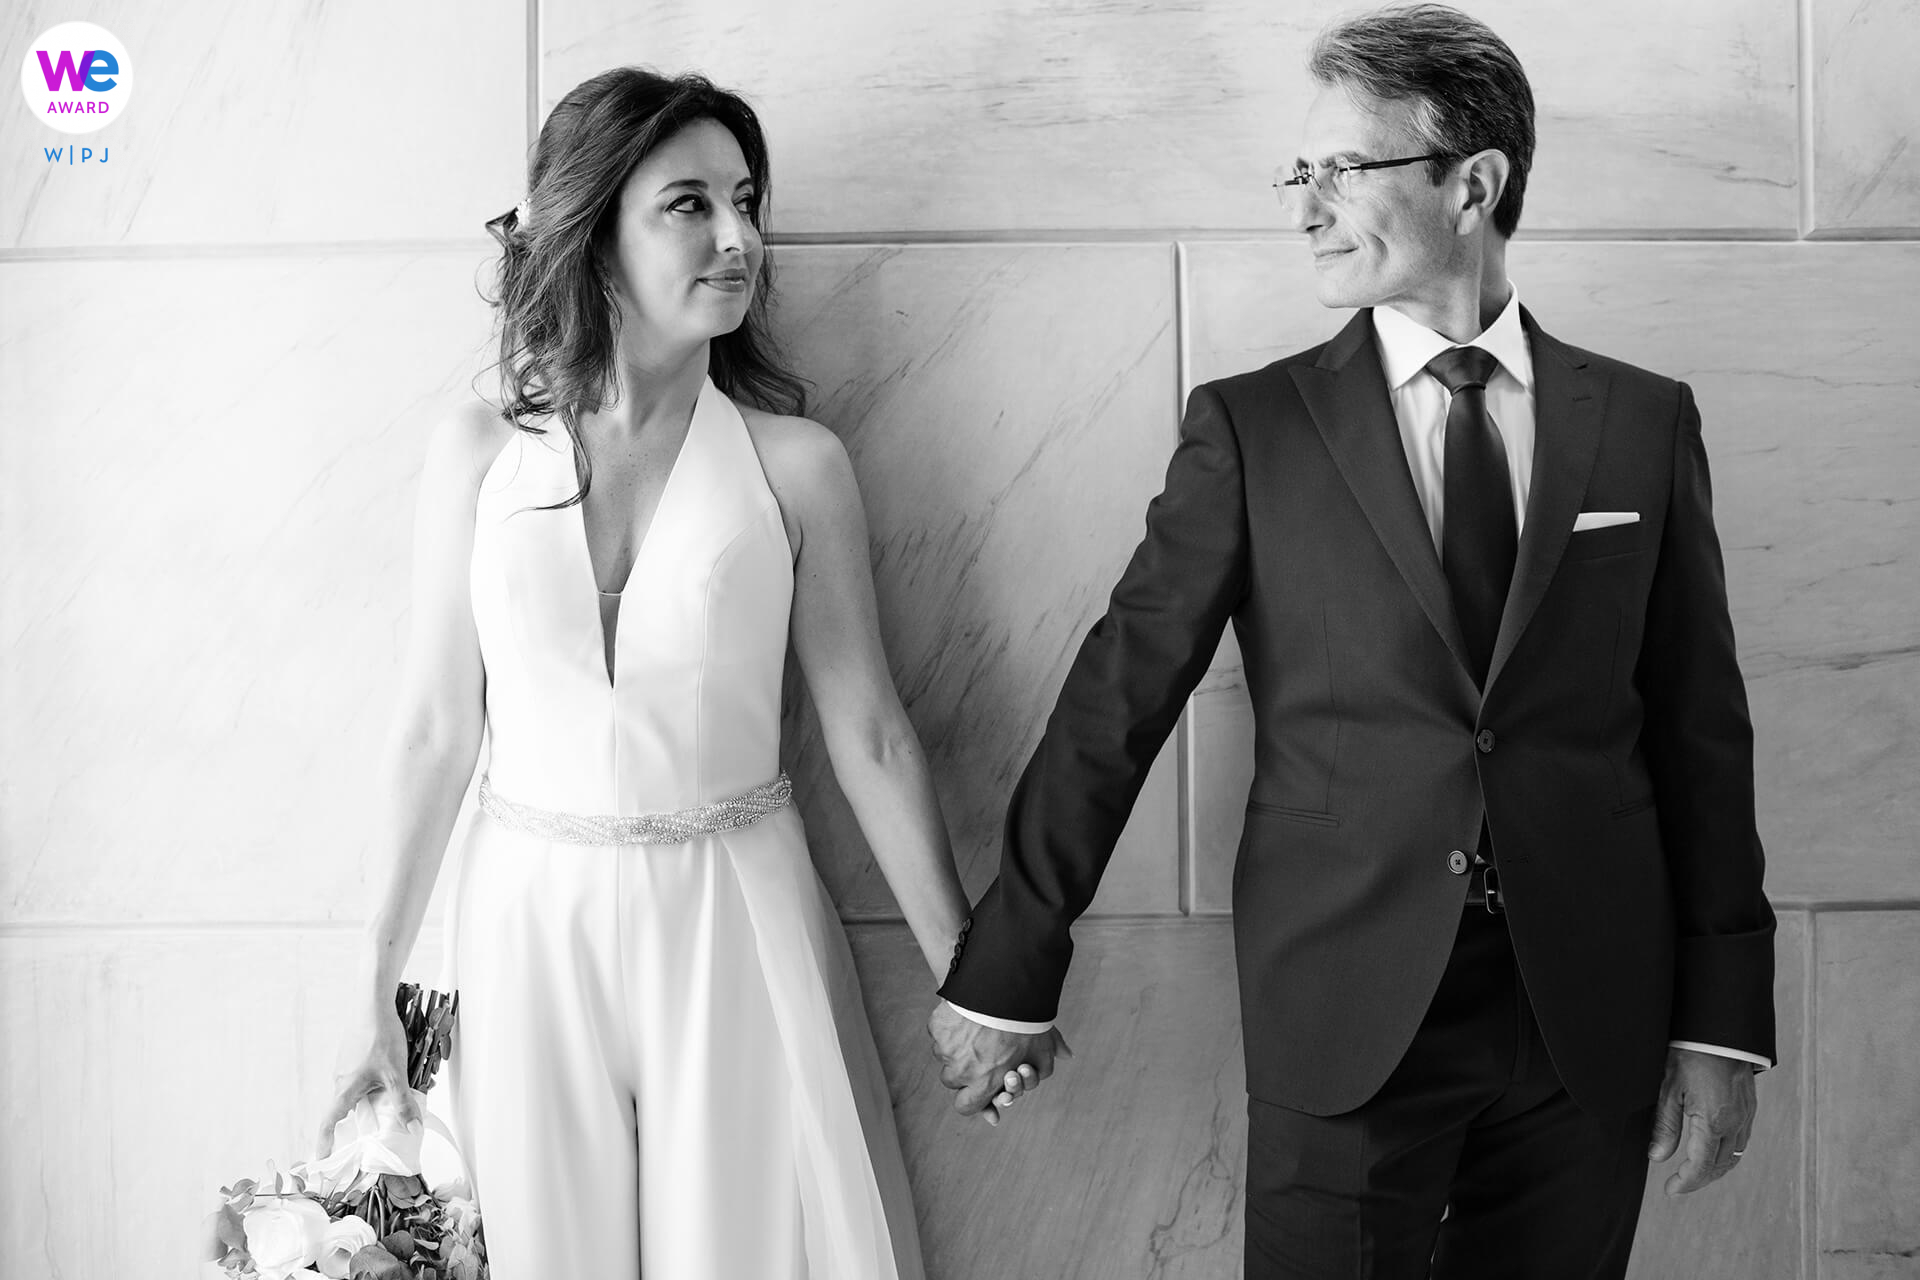 Legal Wedding Portrait at Palazzo Platamone, Trapani | The loving look of the newlyweds hand-in-hand